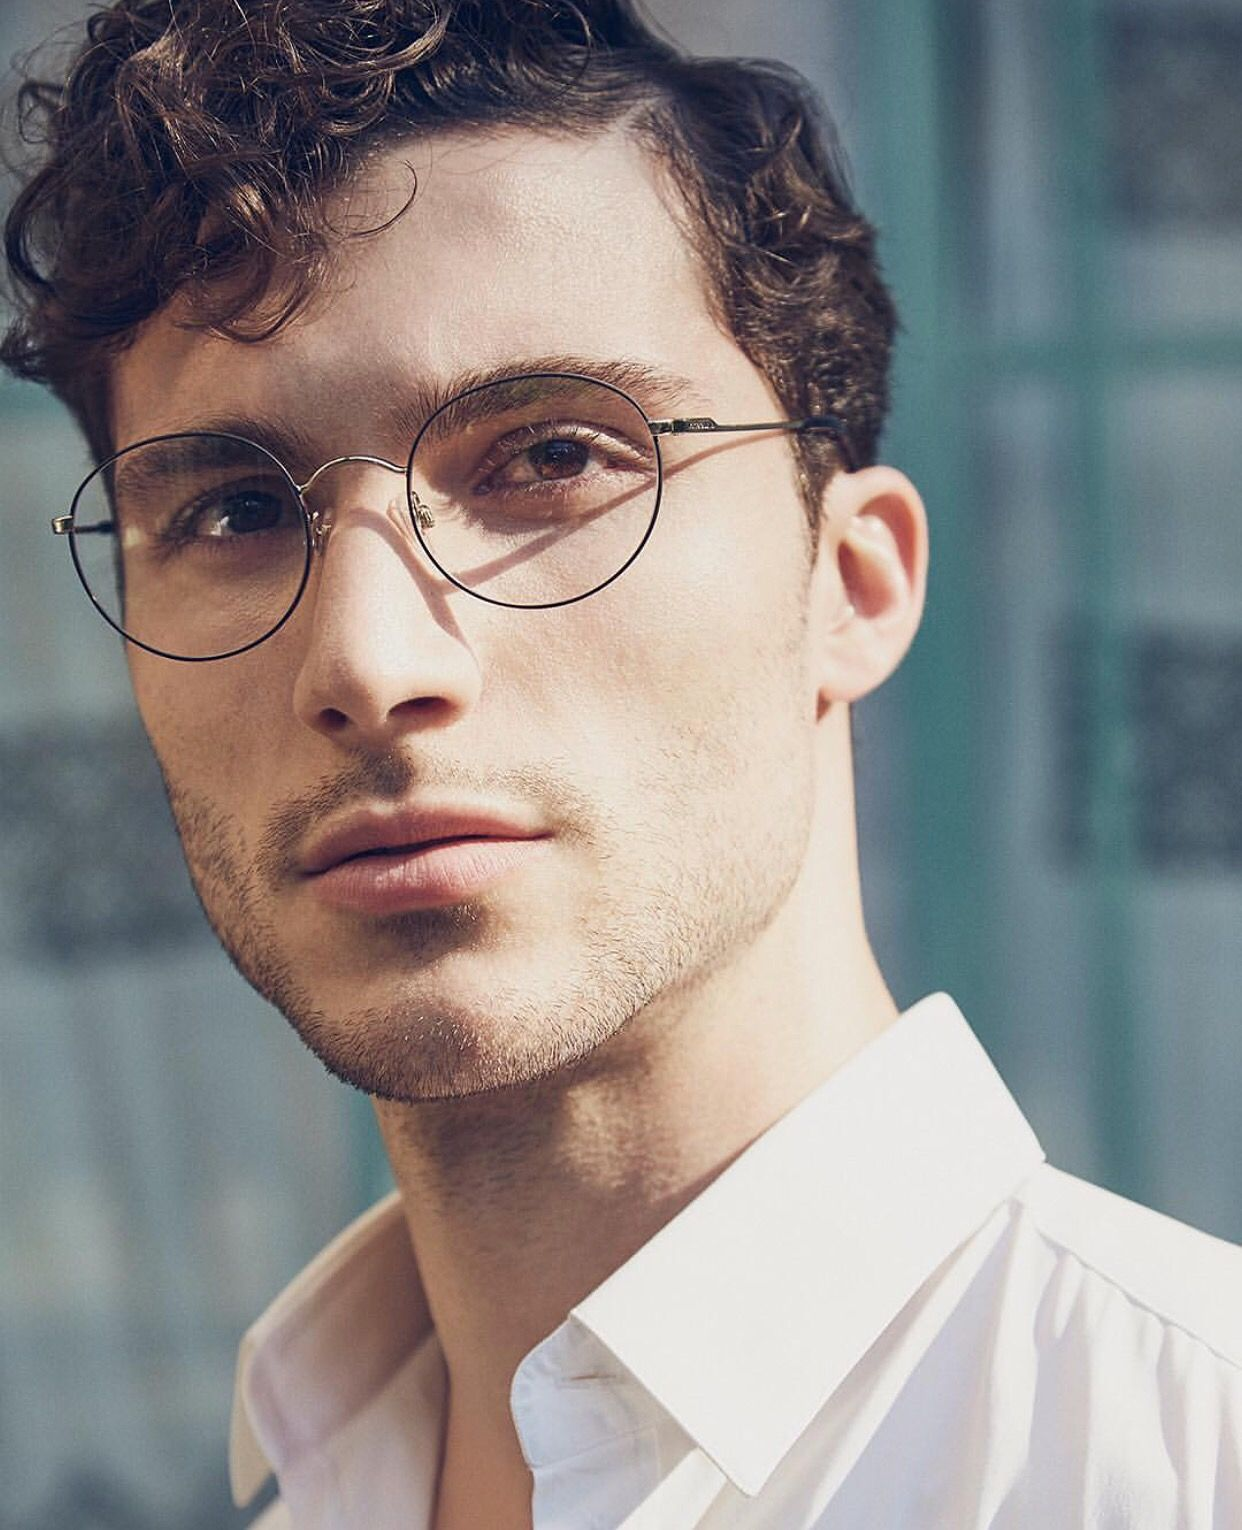 81e0f0240b8d D&G - Dolce&Gabbana Fashionable eyewear for men and women - Eyeglasses and  sunglasses available with or without prescription lenses - Find these  fashion ...